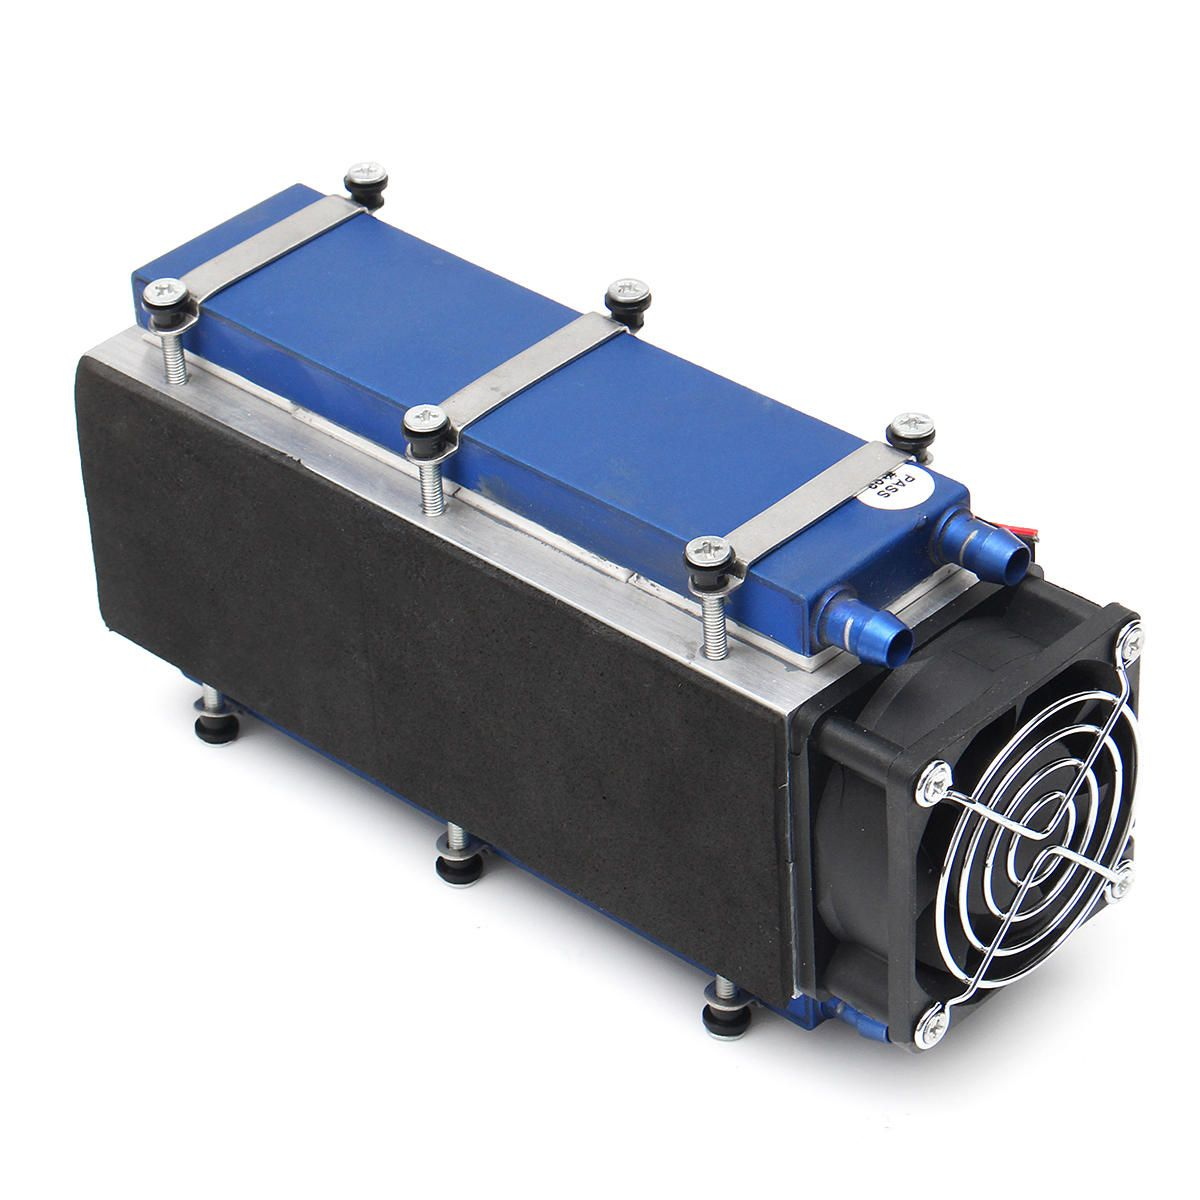 Us 81 08 Dc12v 60a 576w 8 Chip Tec1 12706 Thermoelectric Cooler Radiator Air Cooling Equipment Arduino Compatible Scm Diy Kits From Electronics On Banggood Co